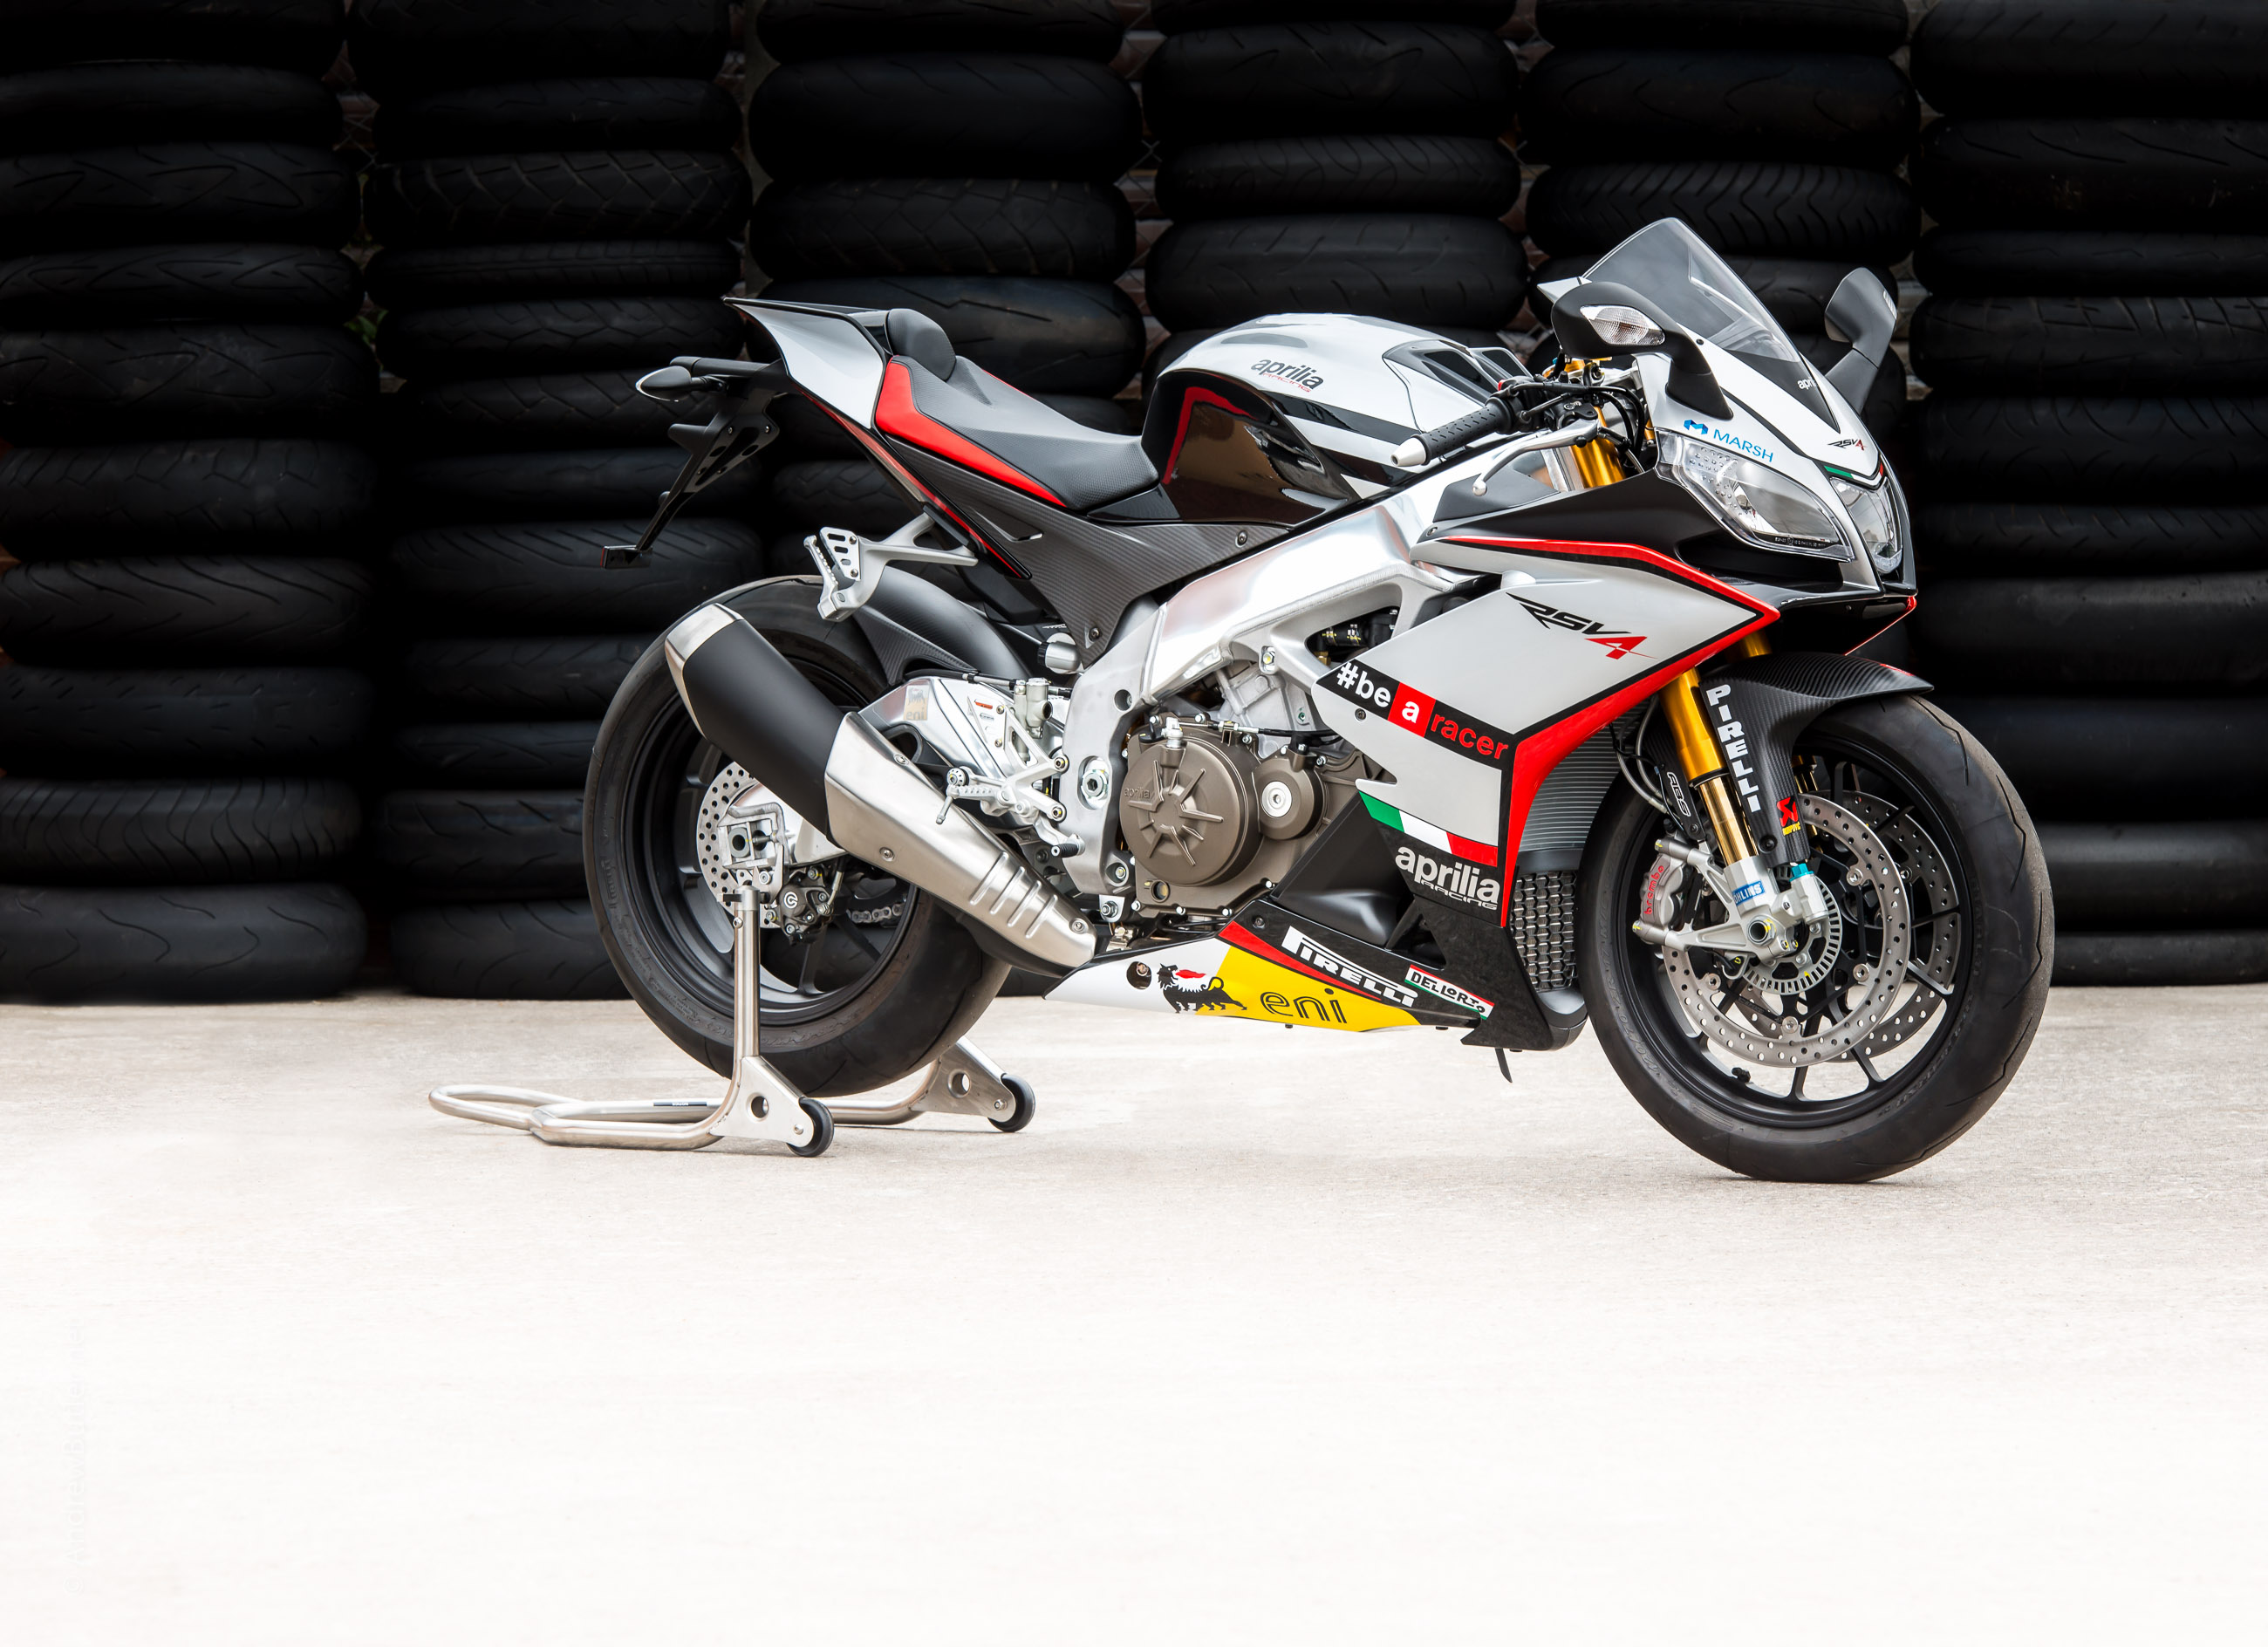 Motorbike Photographer Aprilia Superbike Photography by motorbike photographer Andrew Butler